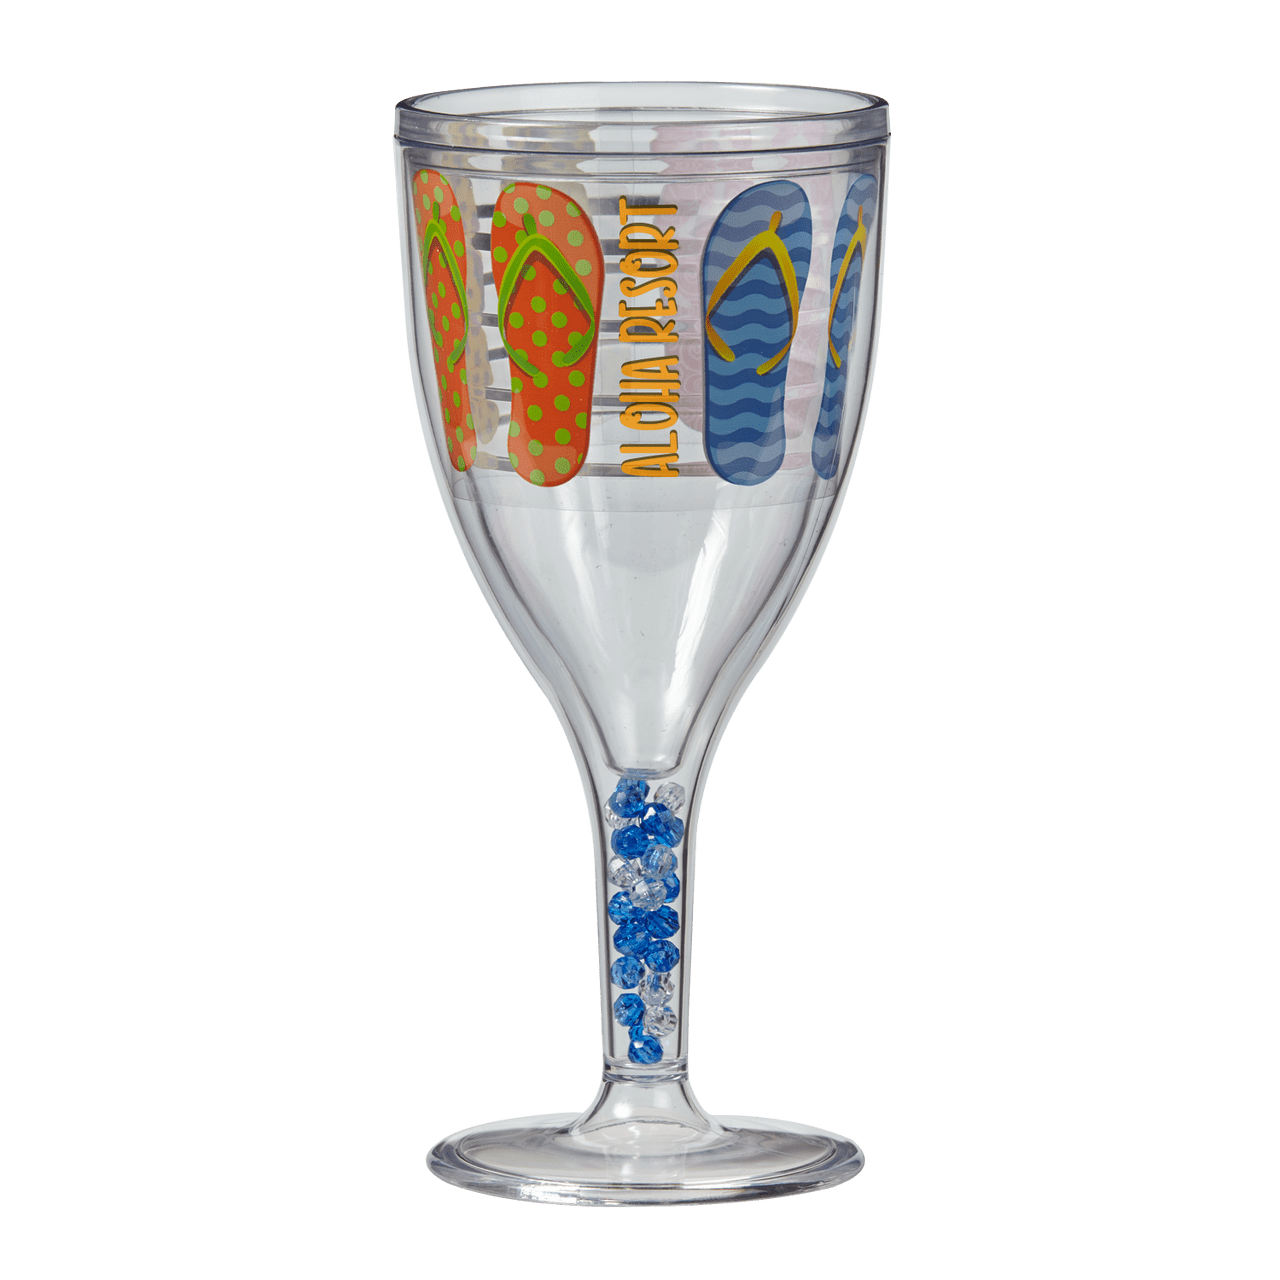 12 oz. Double-Wall Wine Glass - Oasis Promos